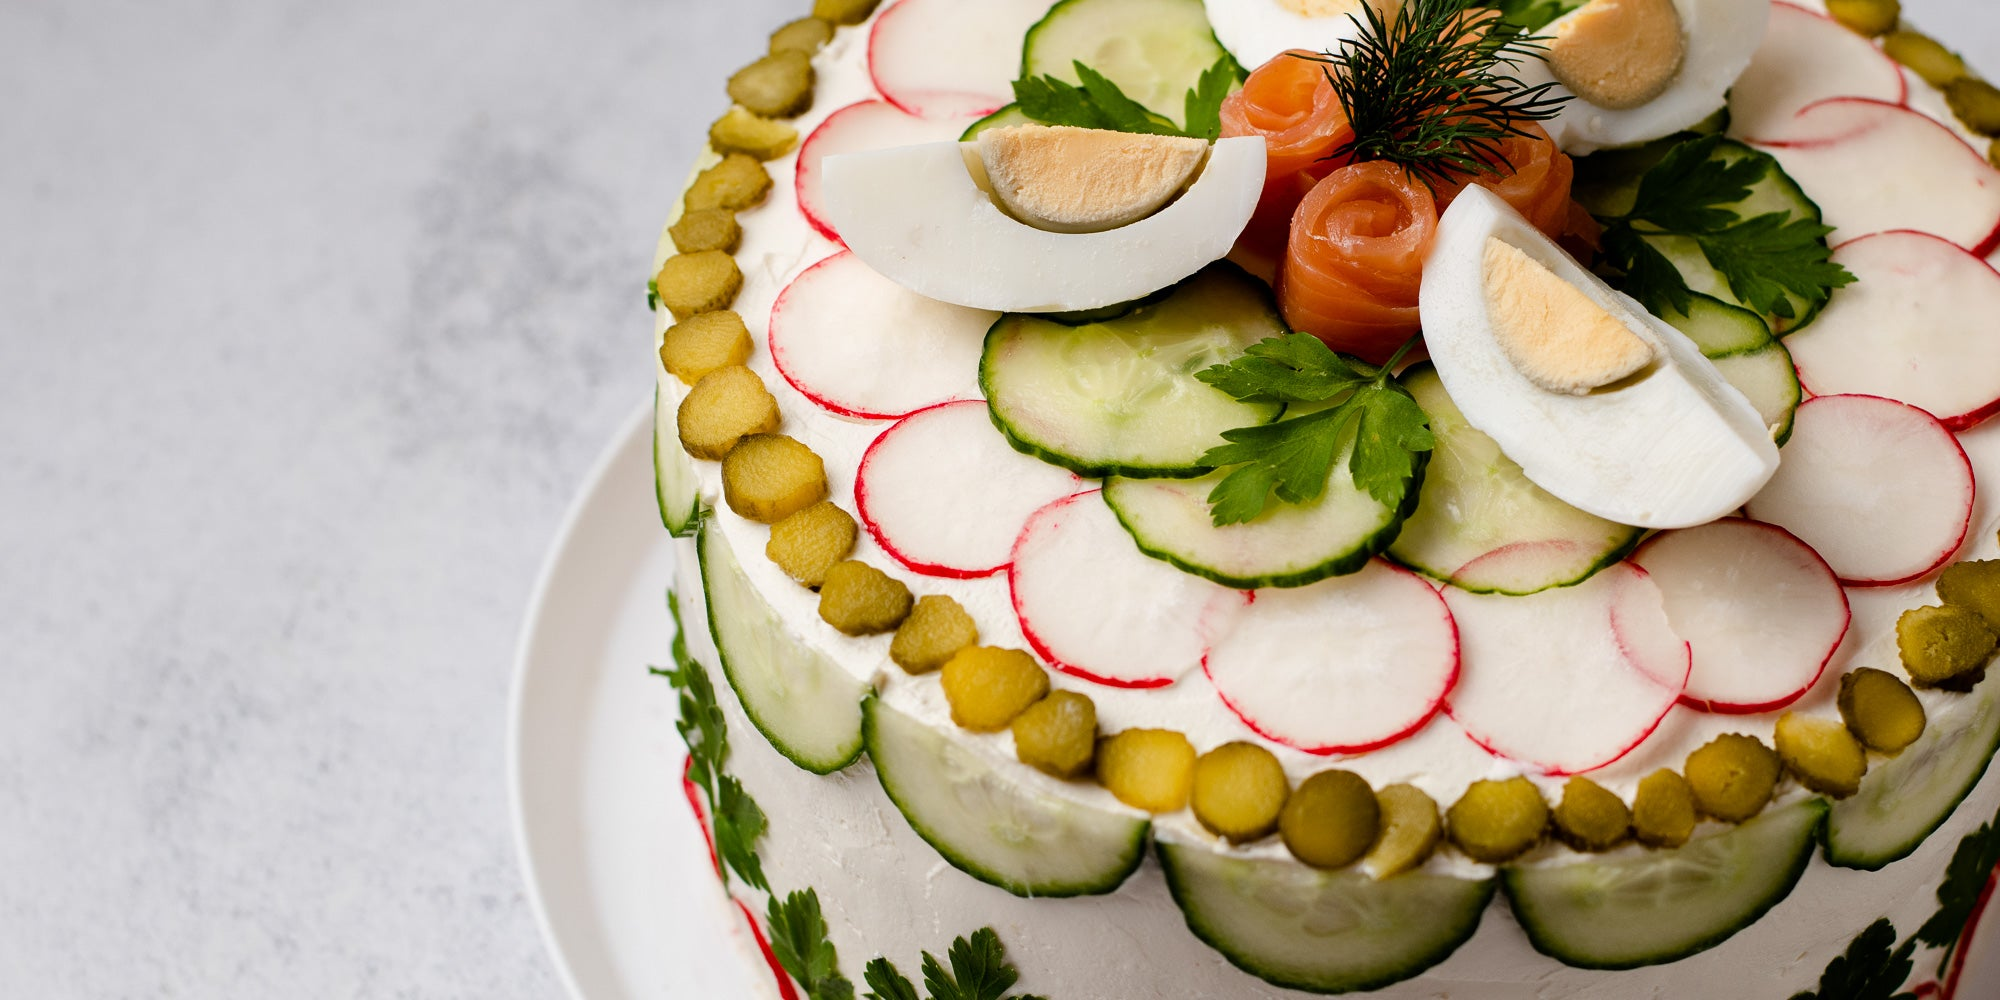 Close up of sandwich cake on white plate